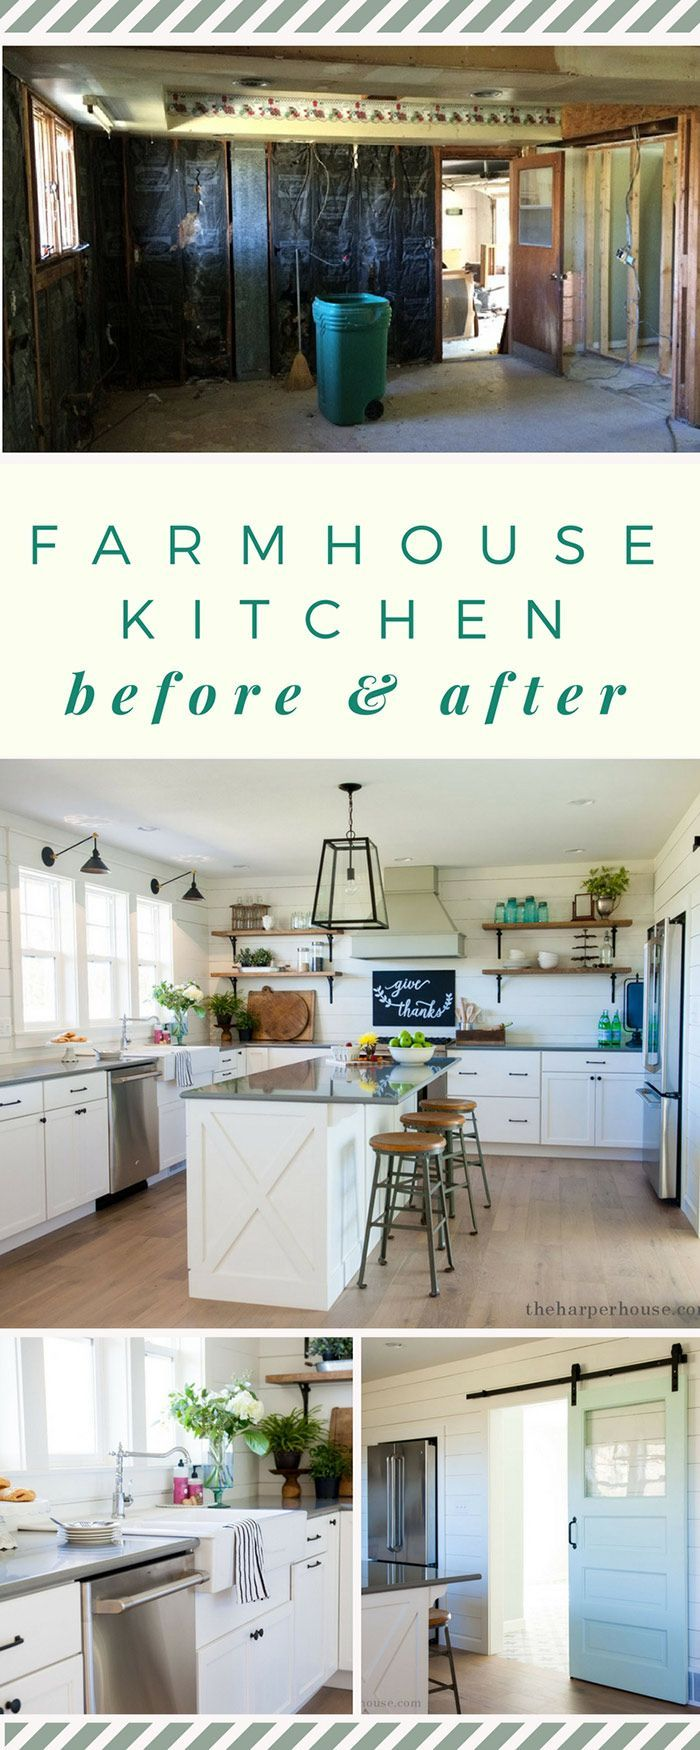 732 best kitchen ideas and kitchen decor images on pinterest fixer upper inspired farmhouse kitchen reveal